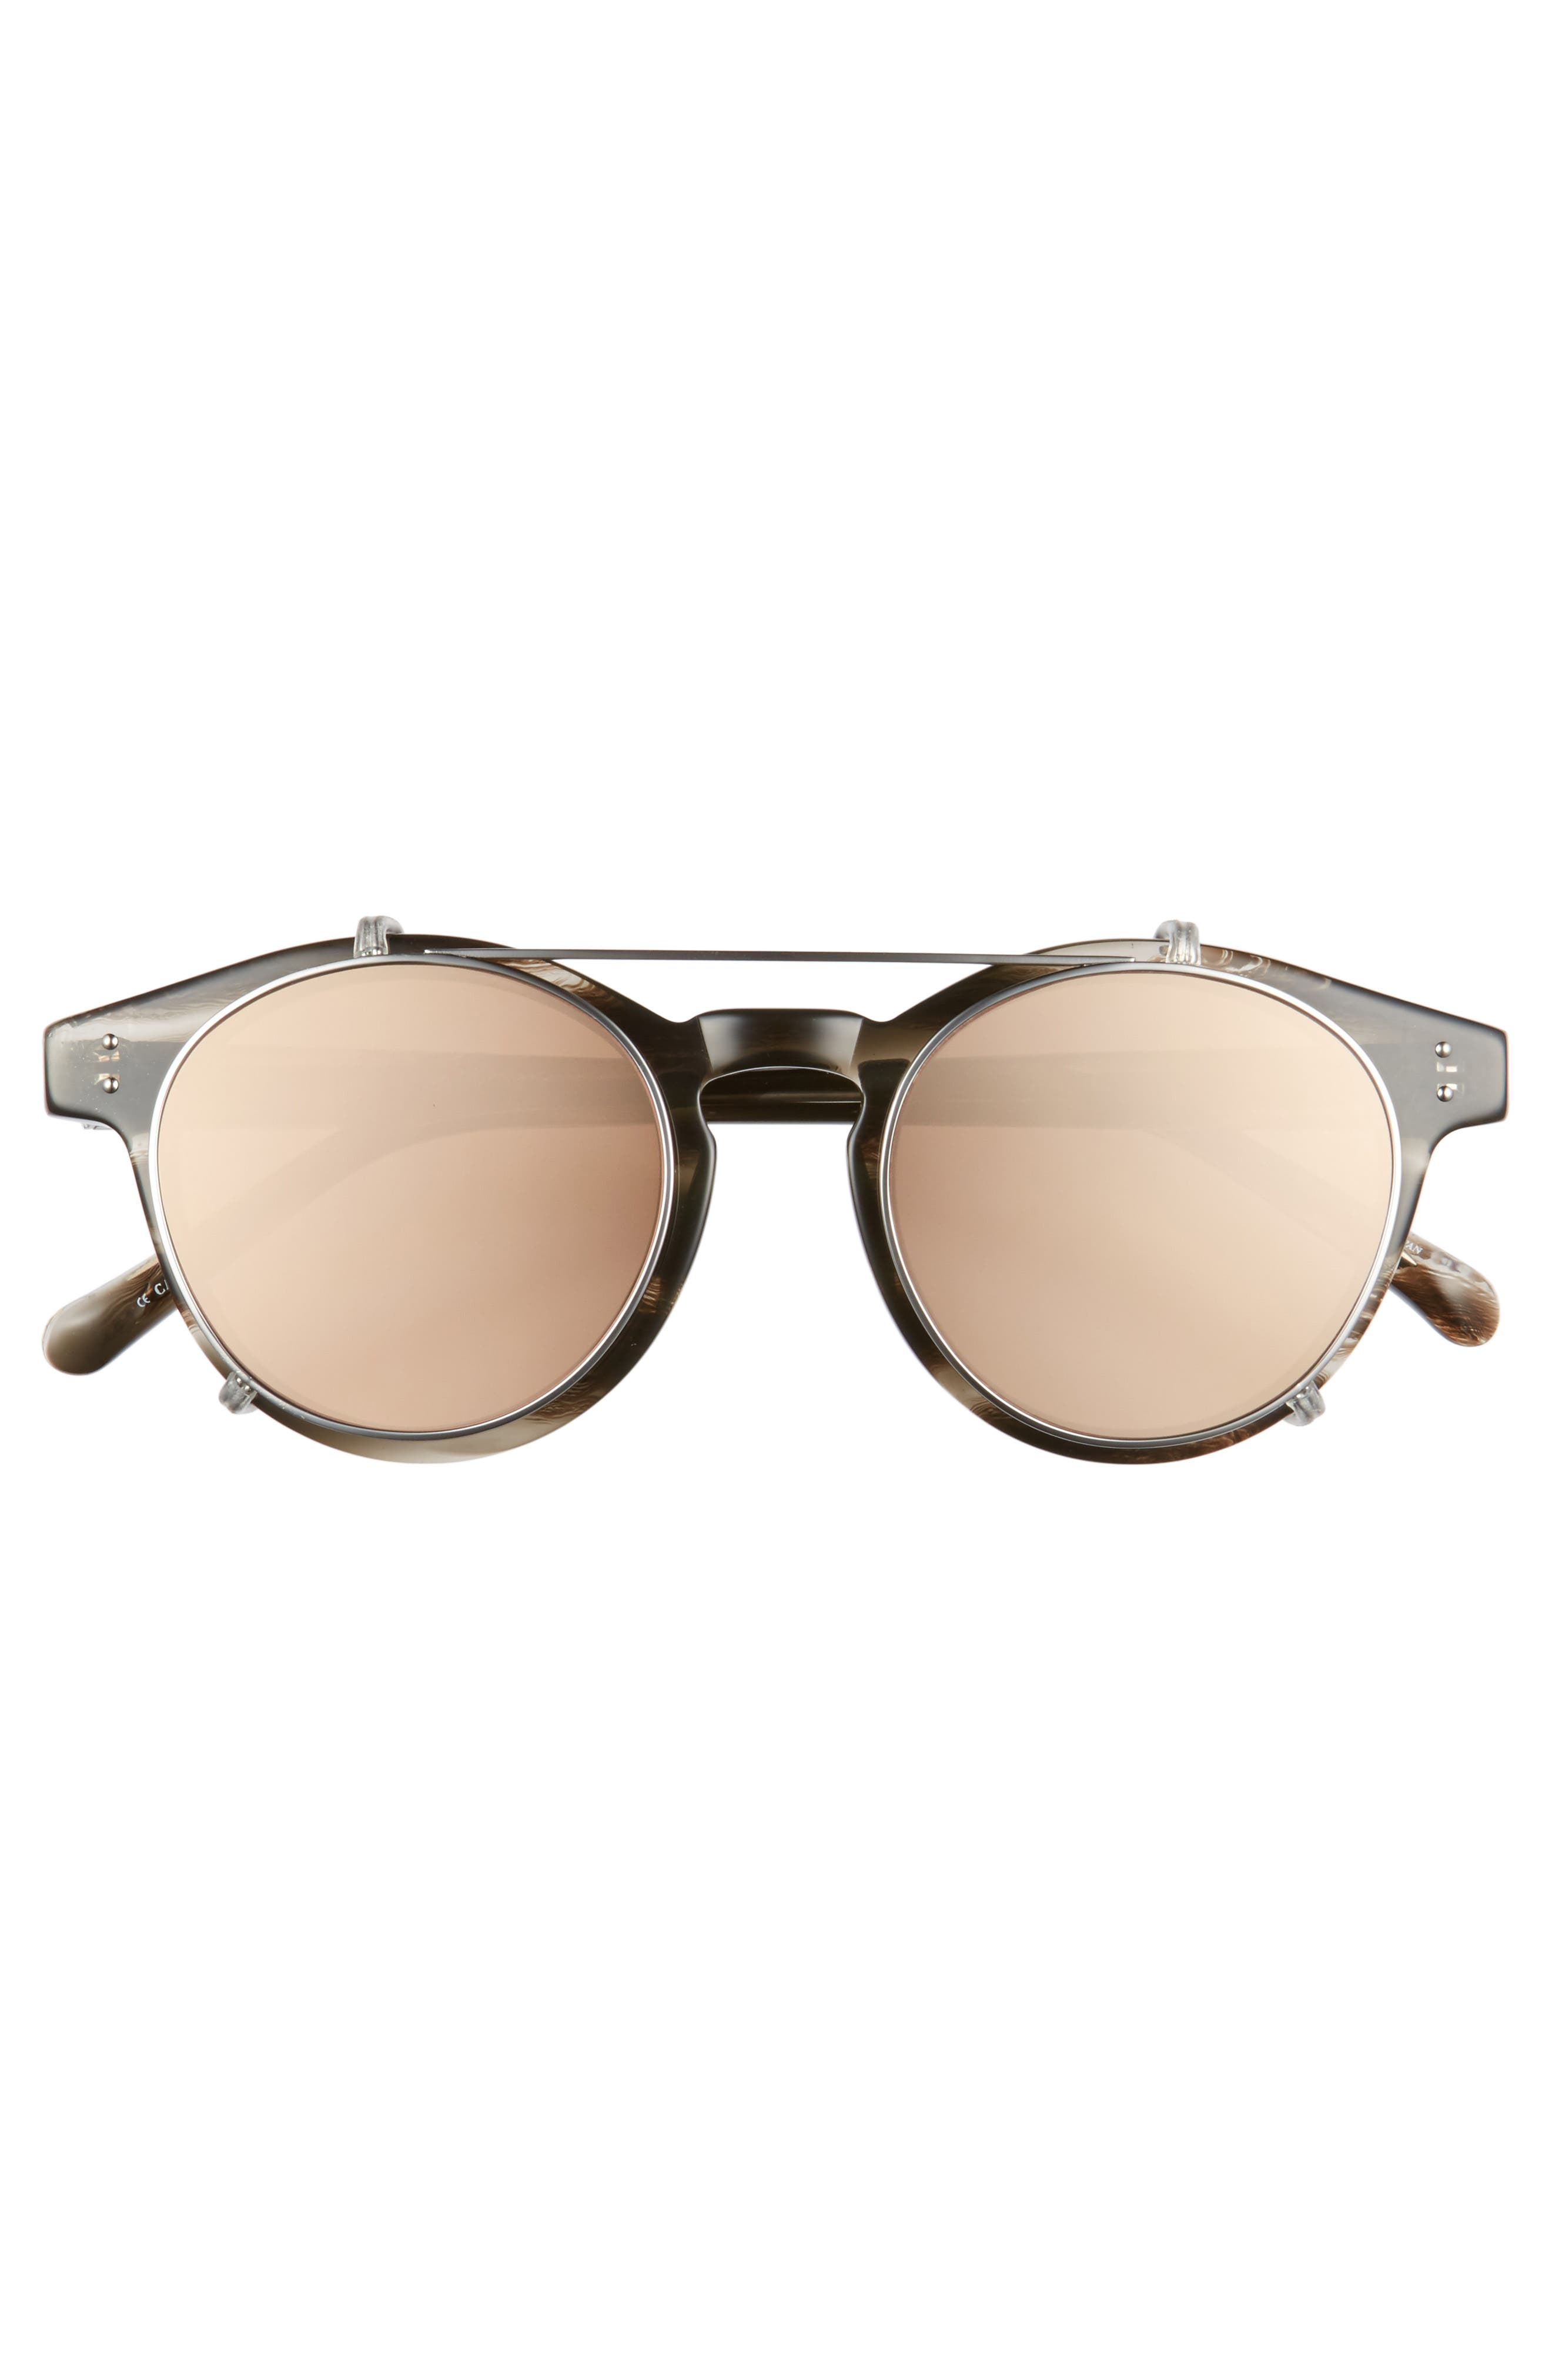 47mm Optical Glasses with Clip-On 18 Karat Rose Gold Trim Sunglasses,                             Alternate thumbnail 5, color,